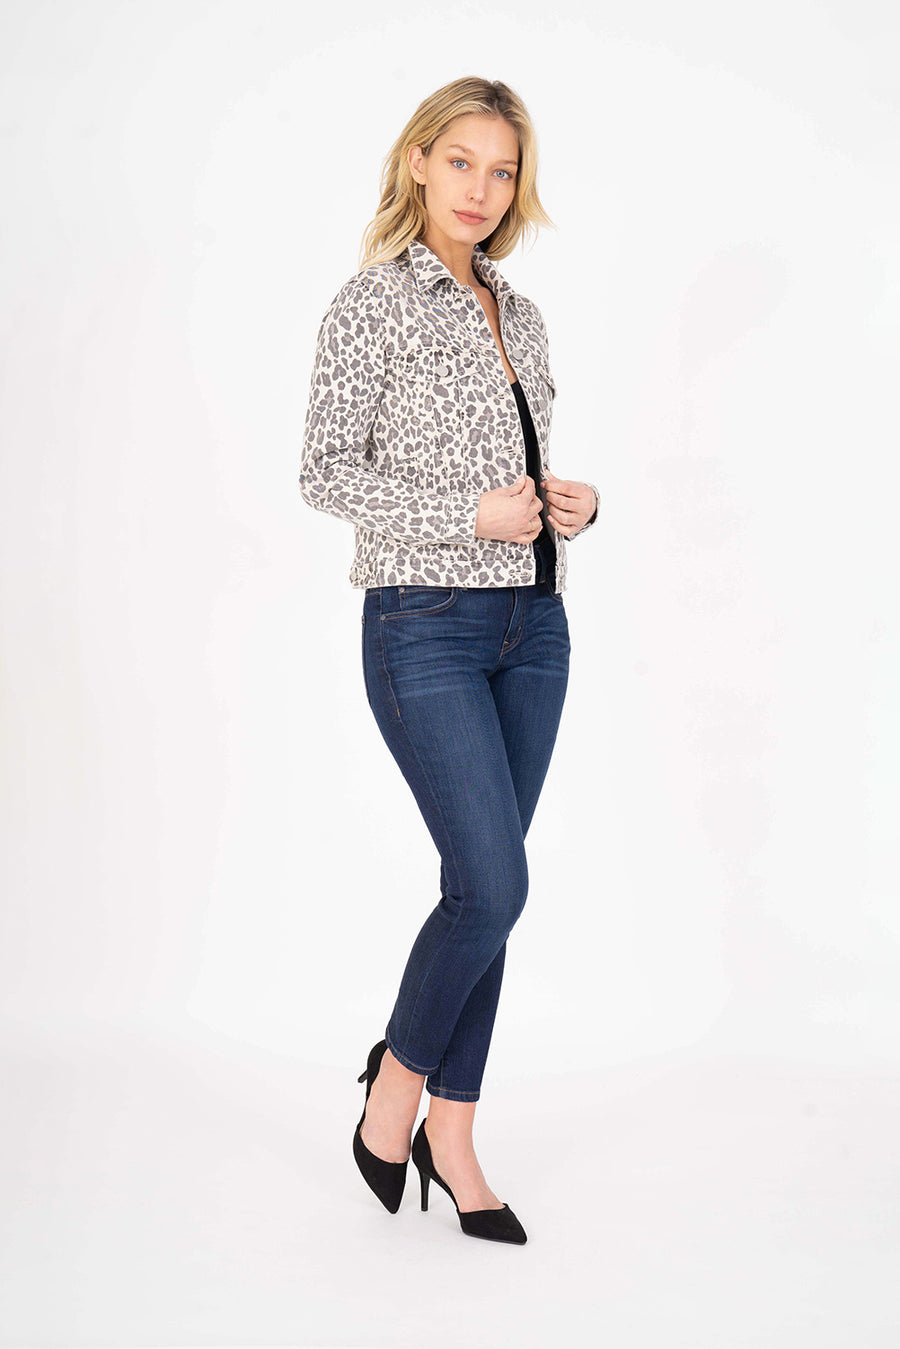 Adeline Western Jacket - level99jeans